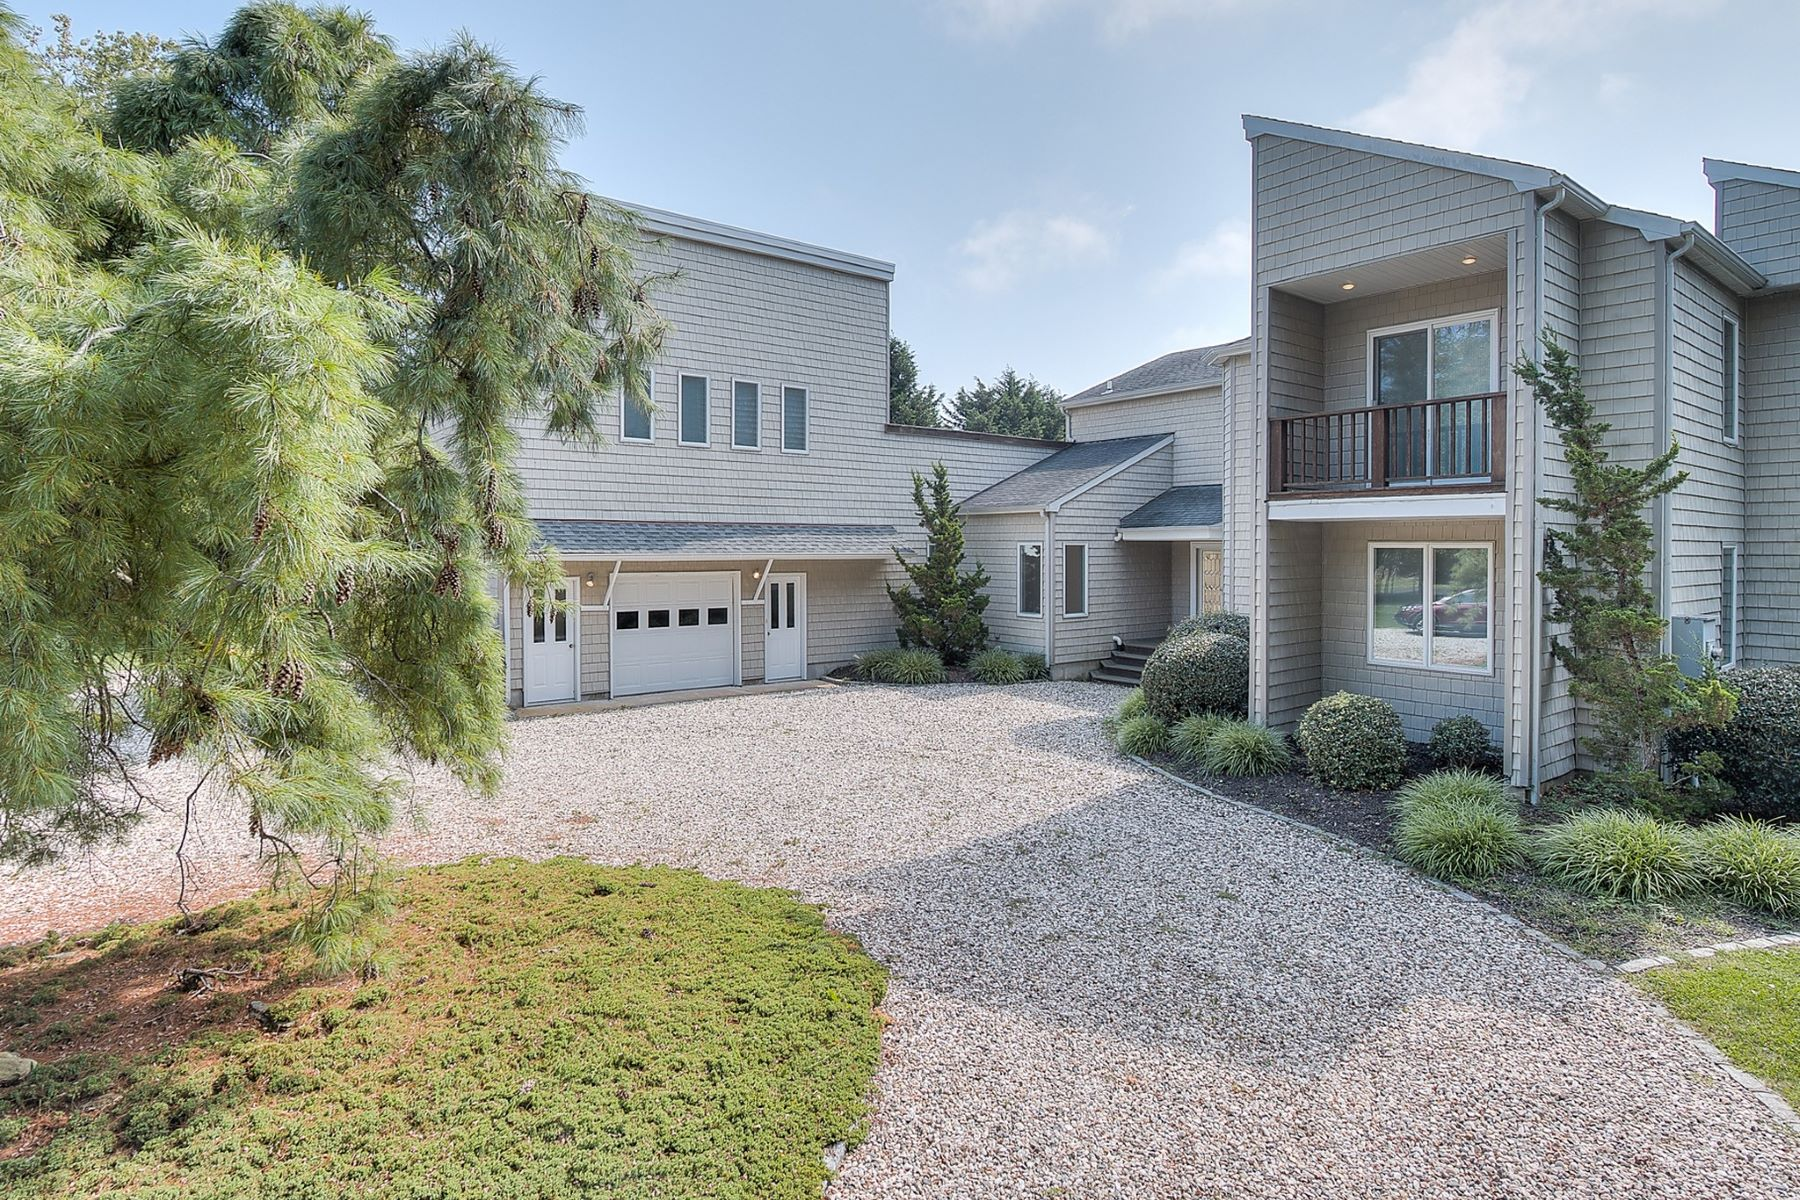 Single Family Home for Sale at 1 Tarkettle Rd , Shelter Island, NY 11964 1 Tarkettle Rd Shelter Island, New York 11964 United States